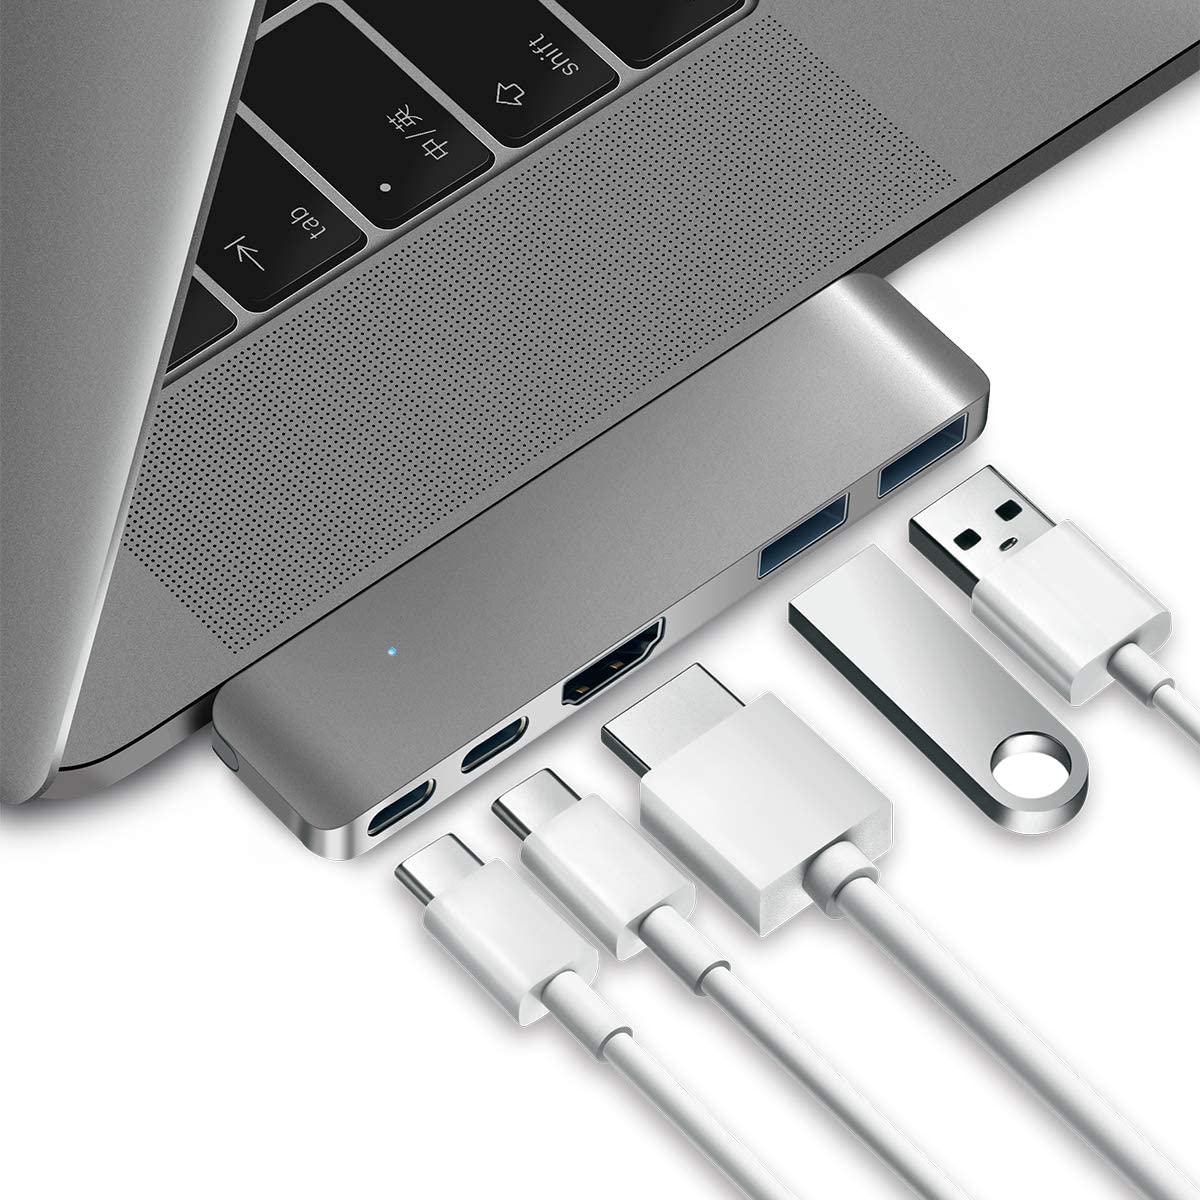 "Purgo USB C Hub Adapter for 2020/2019/2018 MacBook Air, 2020/2019-2016 MacBook Pro 16"",15"",13"", Ultra Slim Type C Hub with 4K HDMI, 100W Power Delivery, 40Gbps TB3 and 2xUSB 3.0 (Space Grey)"